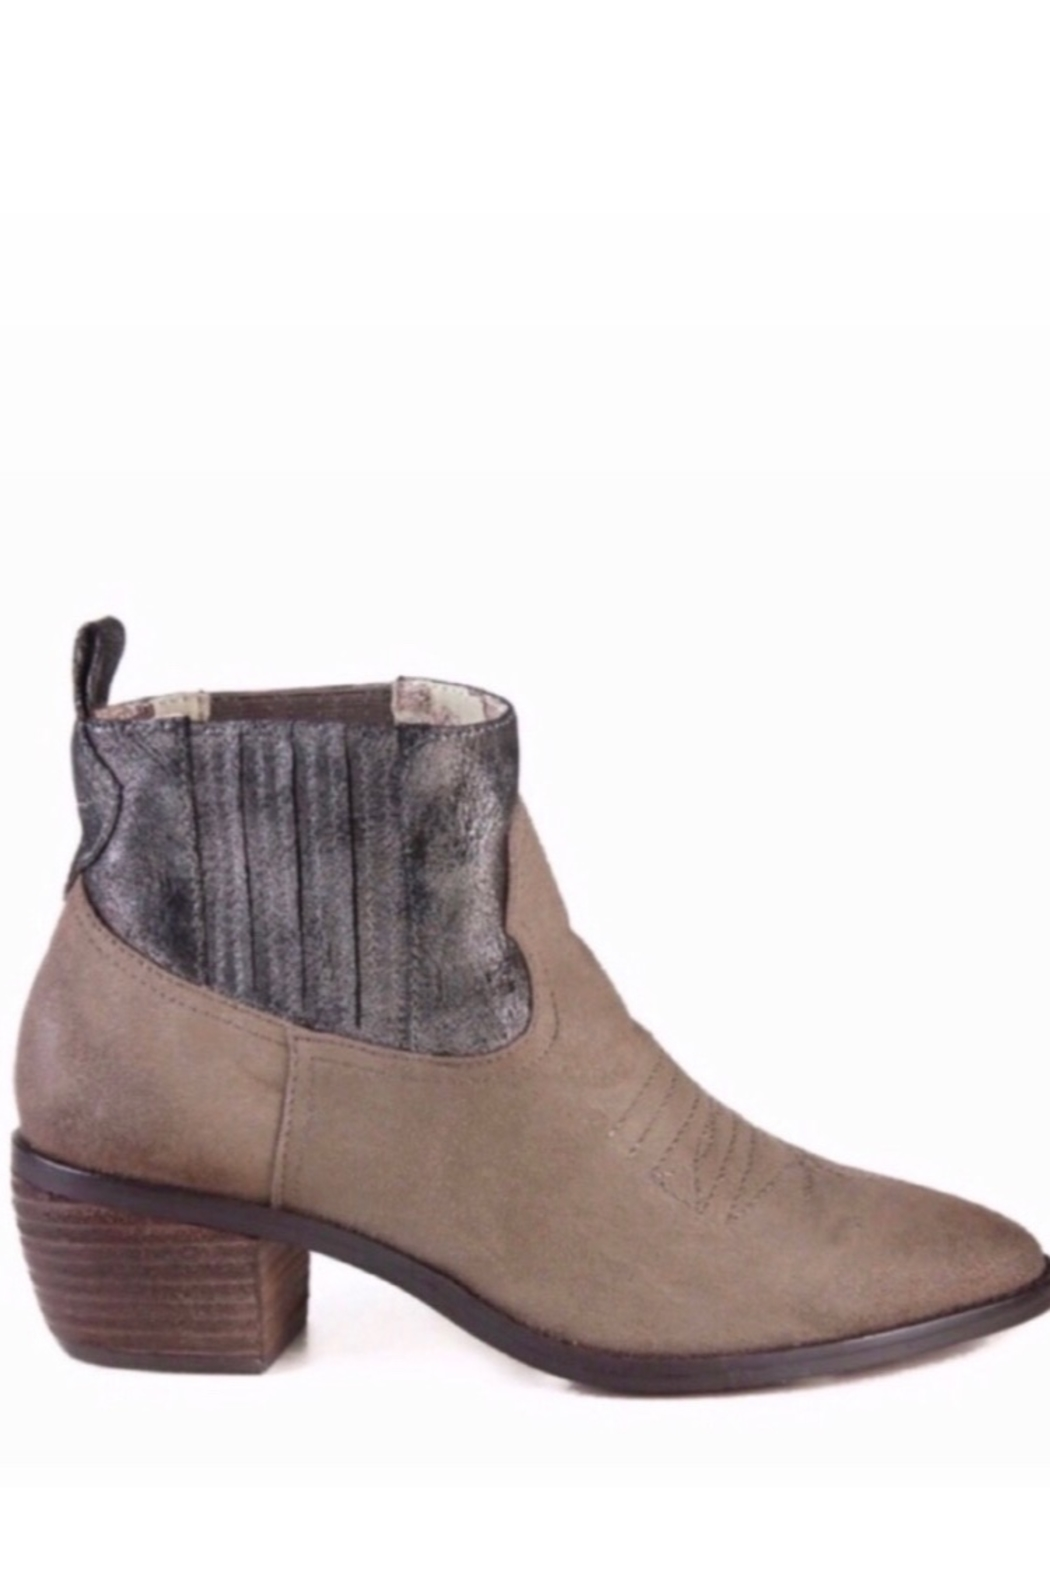 Band Of Gypsies Borderline Mirco Cow Suede Taupe Booties - Front Full Image